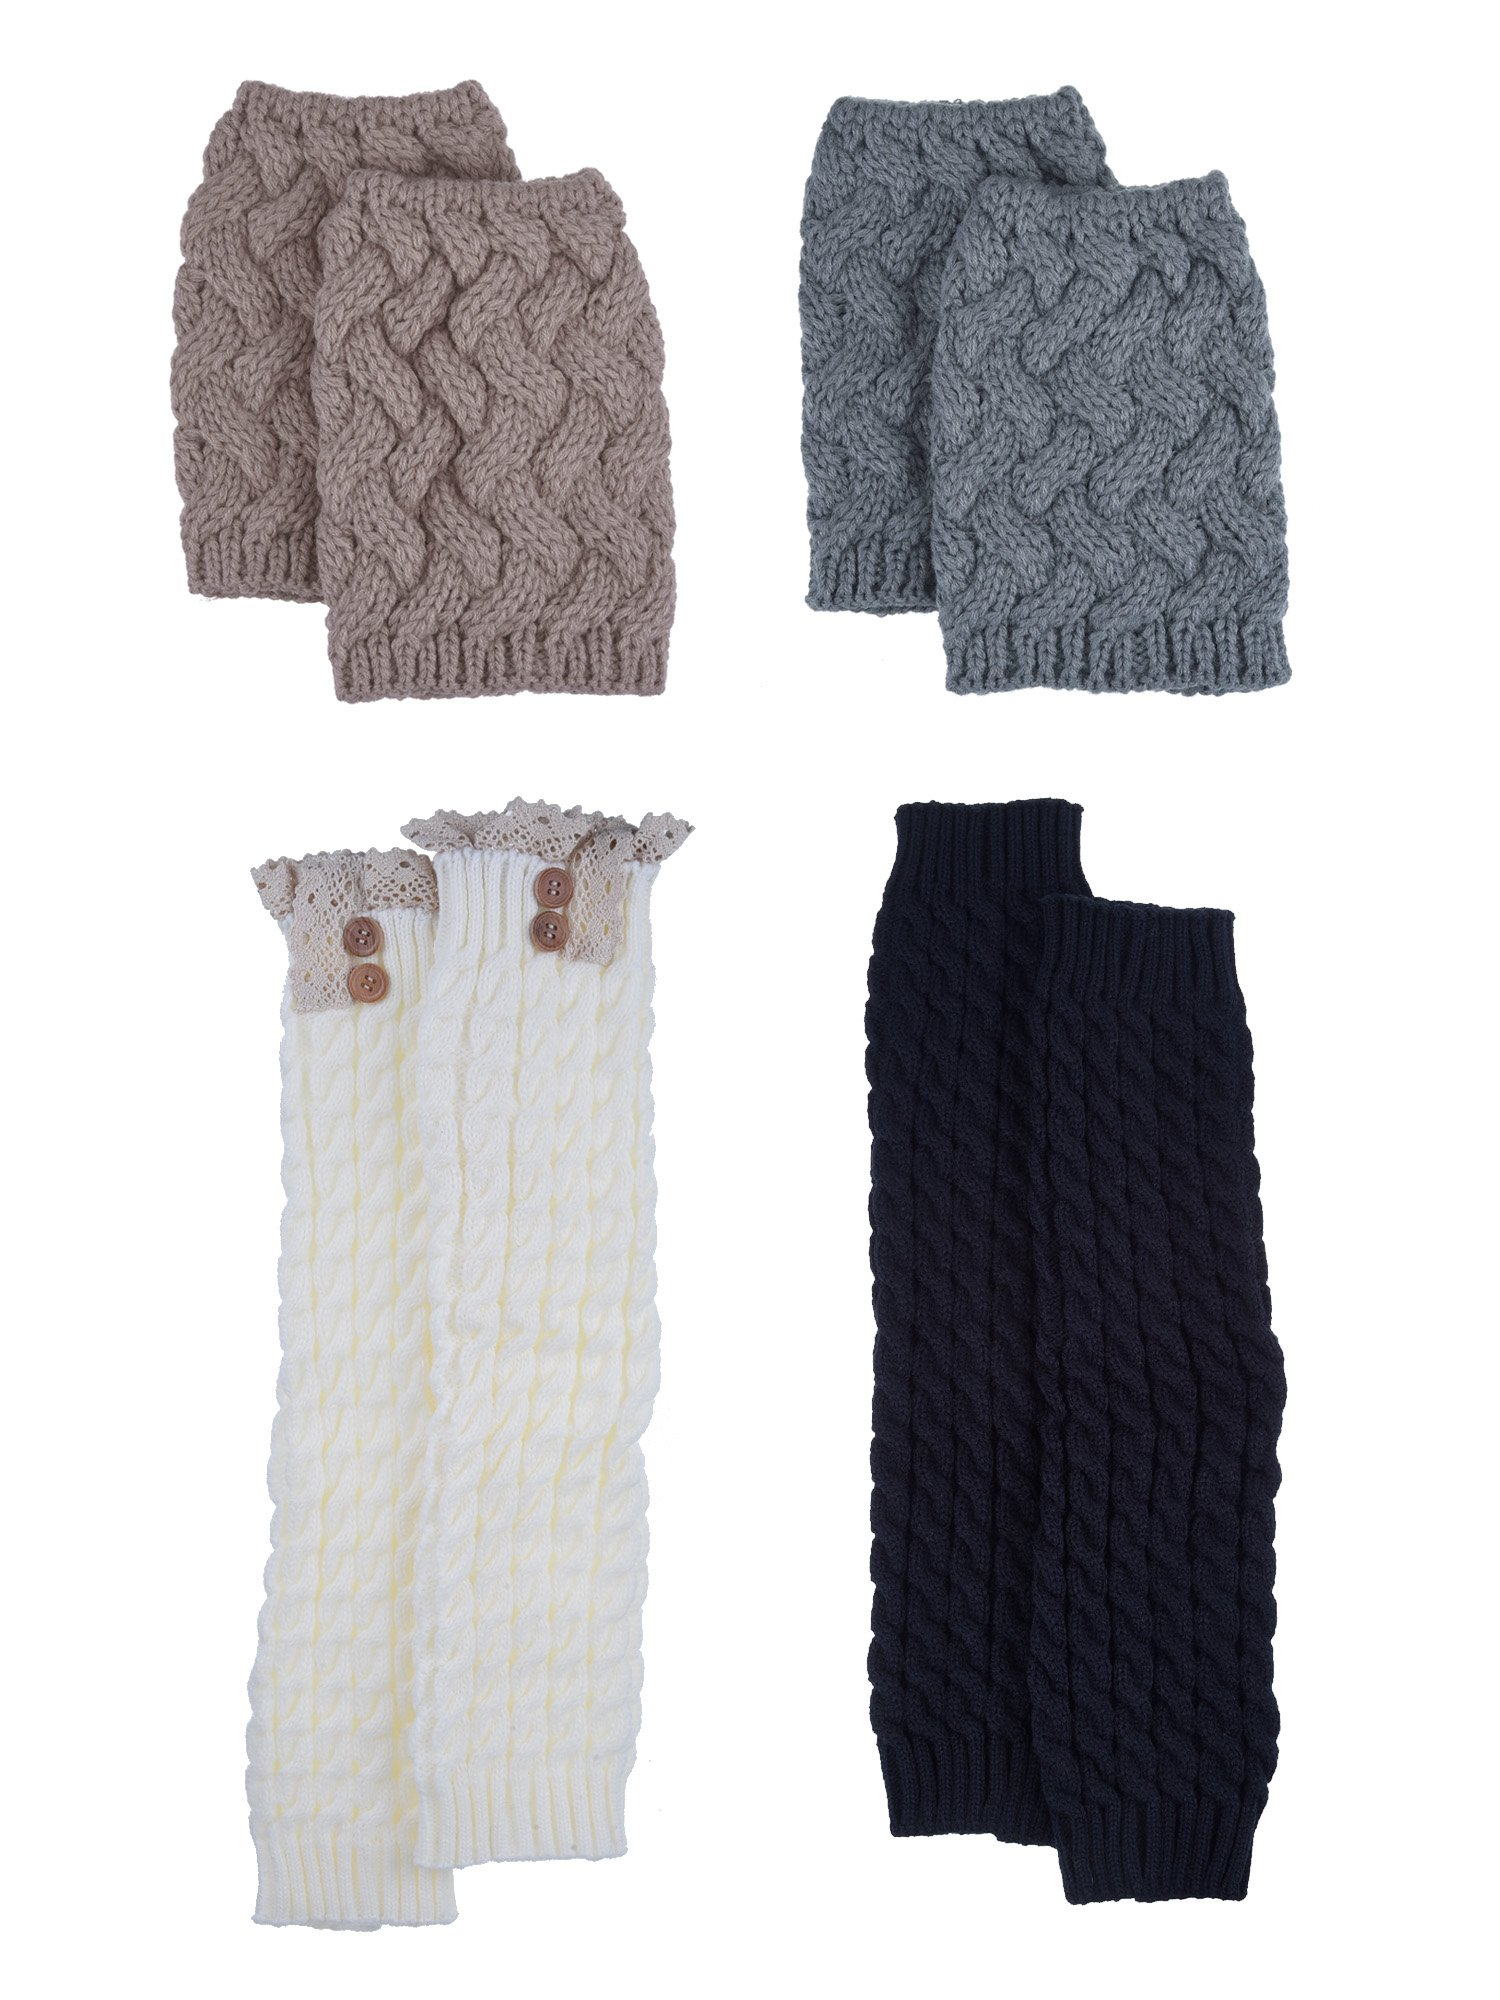 Blulu Women Knit Leg Warmers Boot Socks Toppers Crochet Cuffs with Button and Lace, 4 Pair